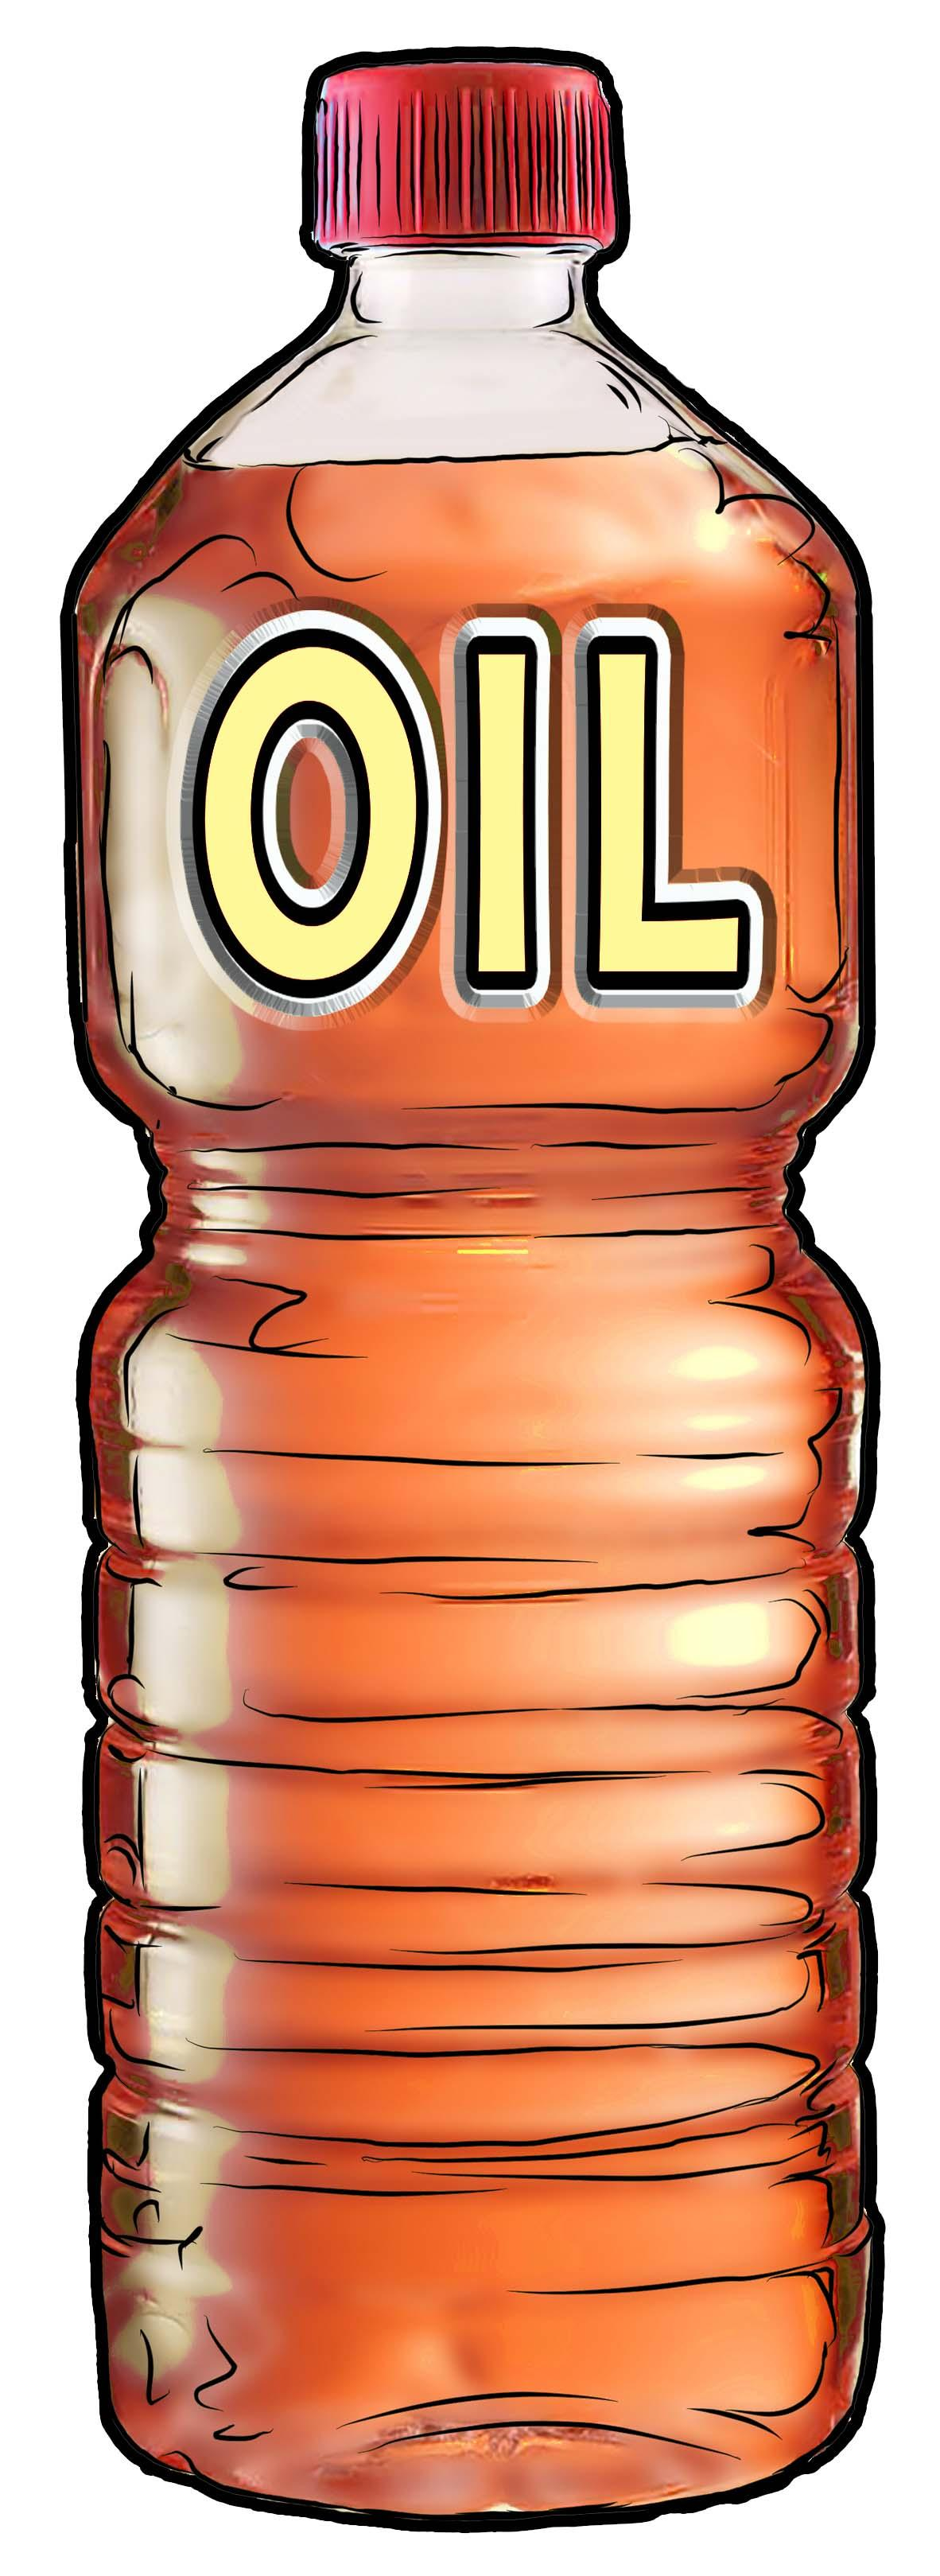 Food - Fats and Oils - 00A - Non-country specific